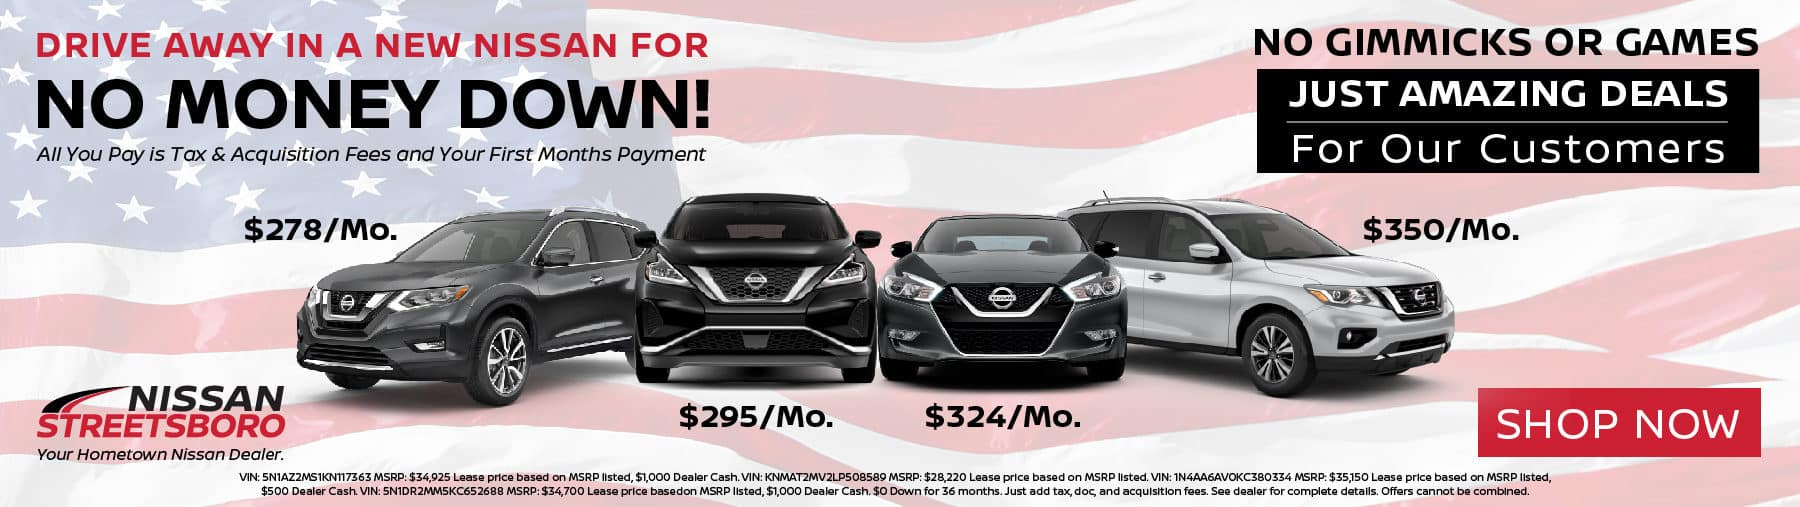 No Money Down on New Nissan